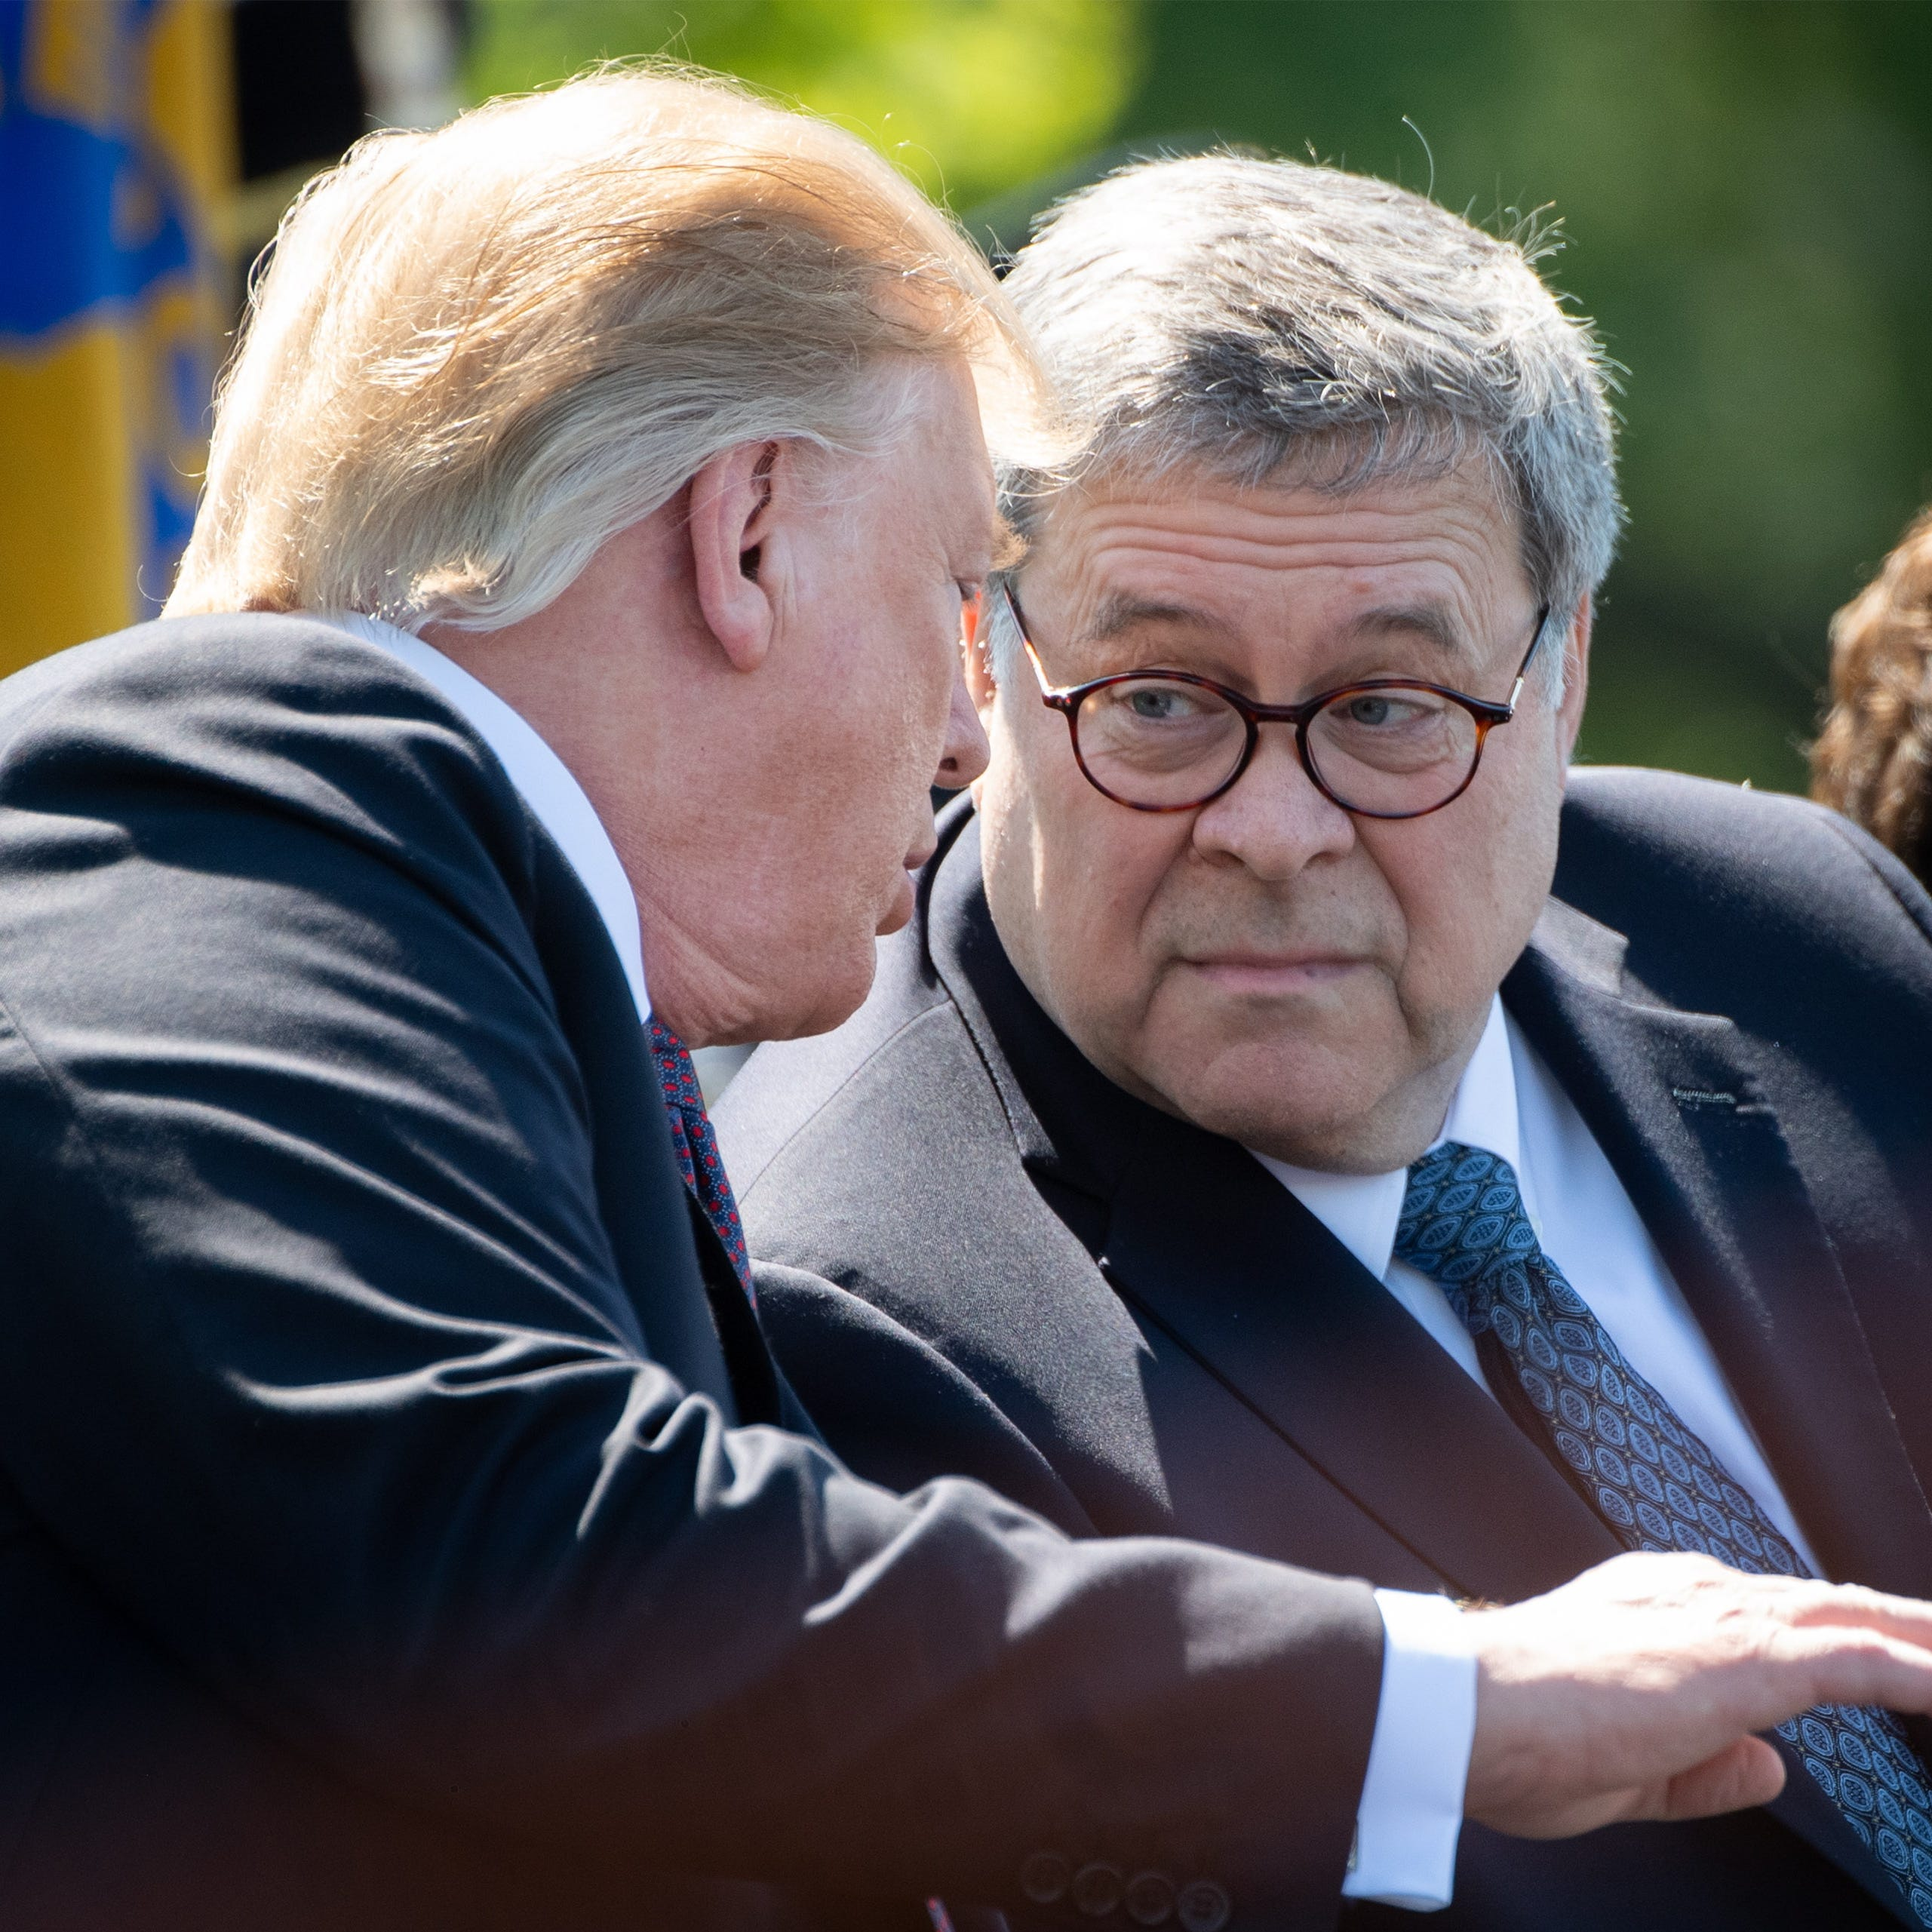 What to do about Attorney General William Barr, the door? | Opinion